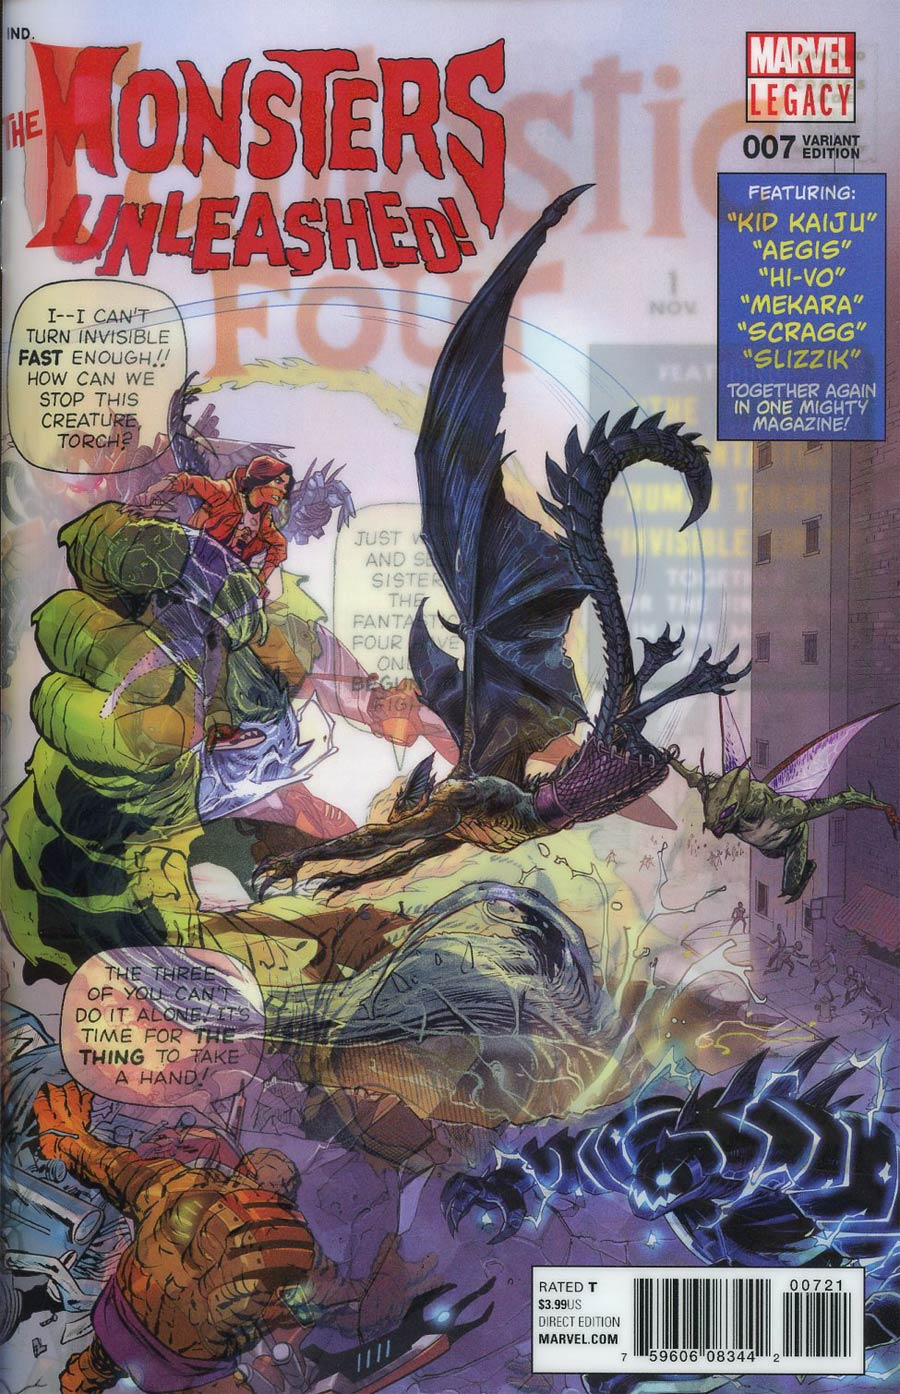 Monsters Unleashed Vol 2 #7 Cover B Variant Dan Mora Lenticular Homage Cover (Marvel Legacy Tie-In)